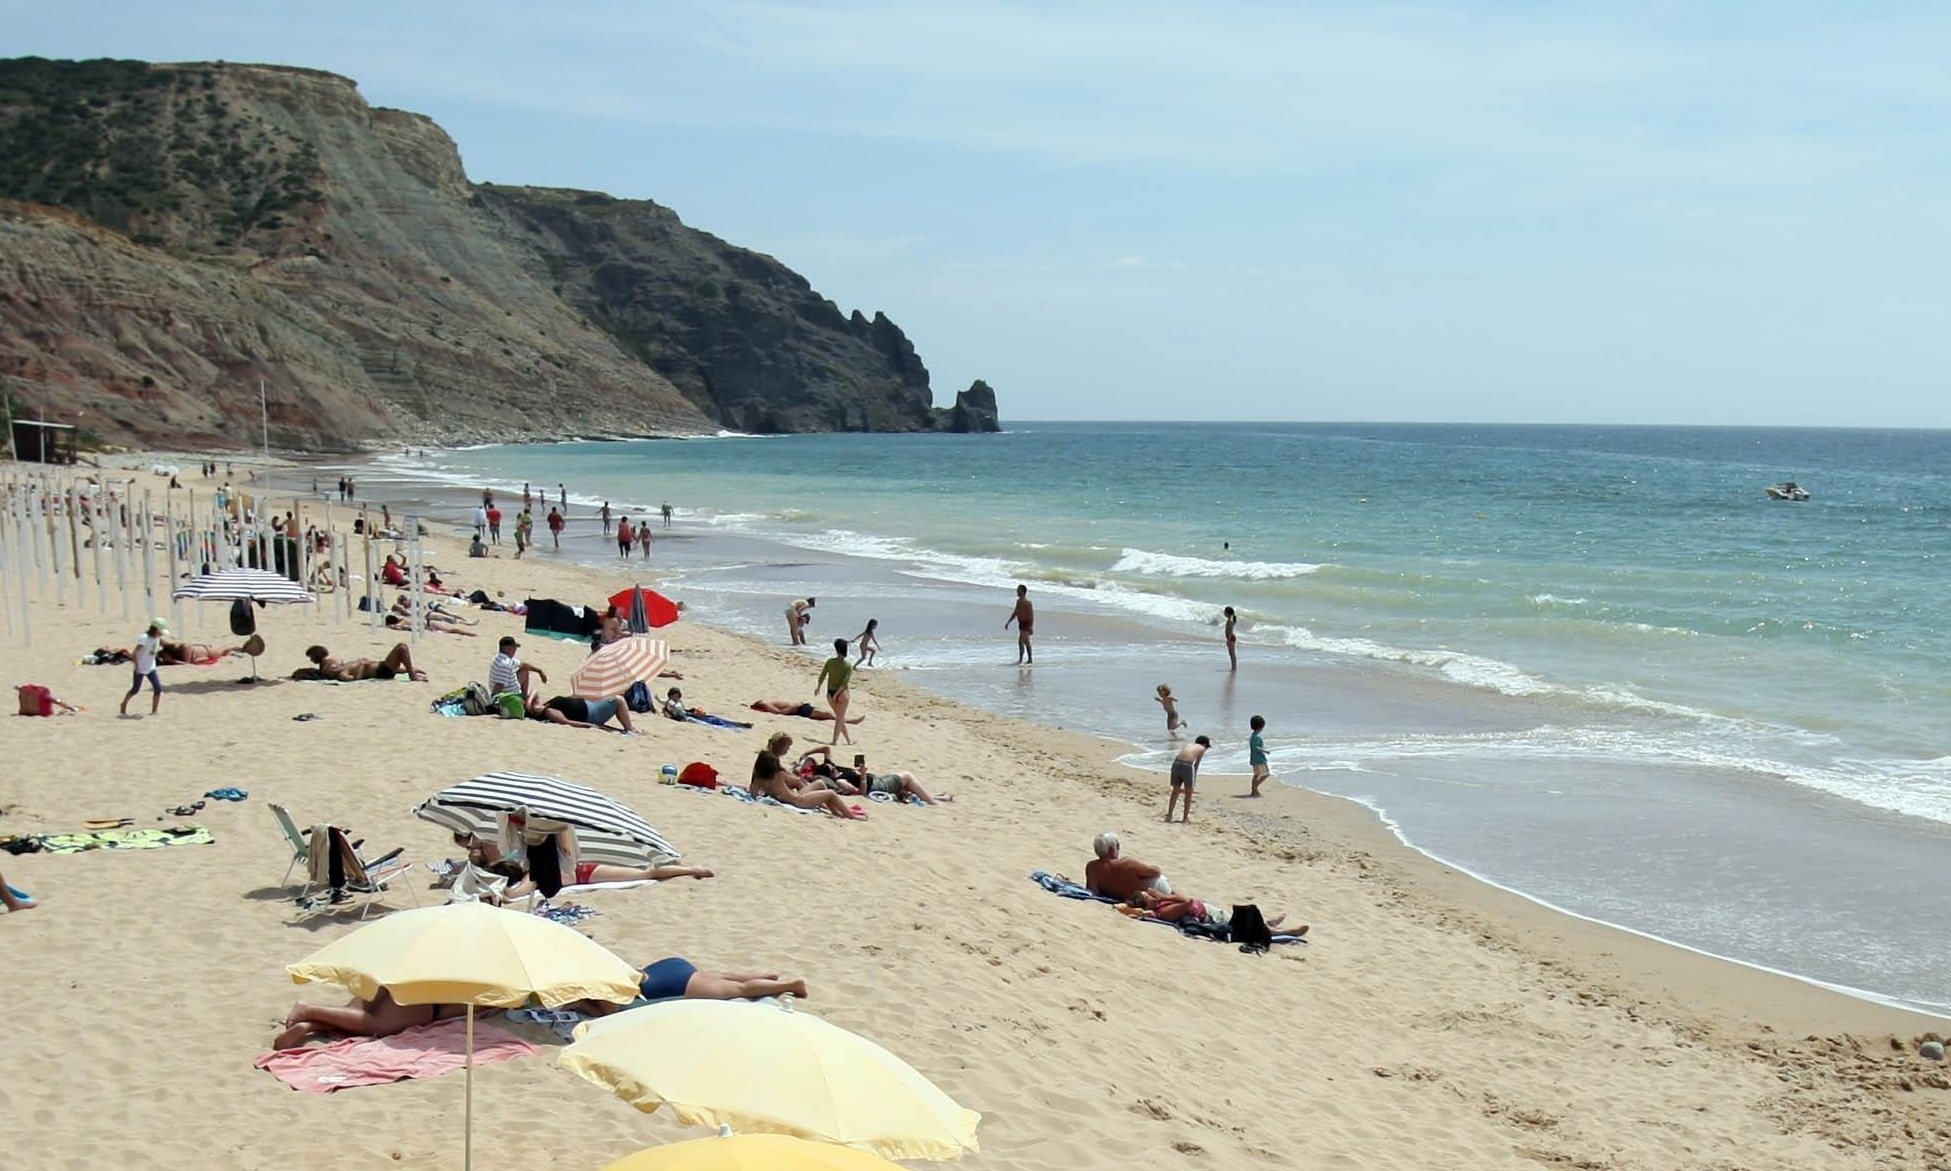 Holidaymakers soaking up the sun in Portugal.